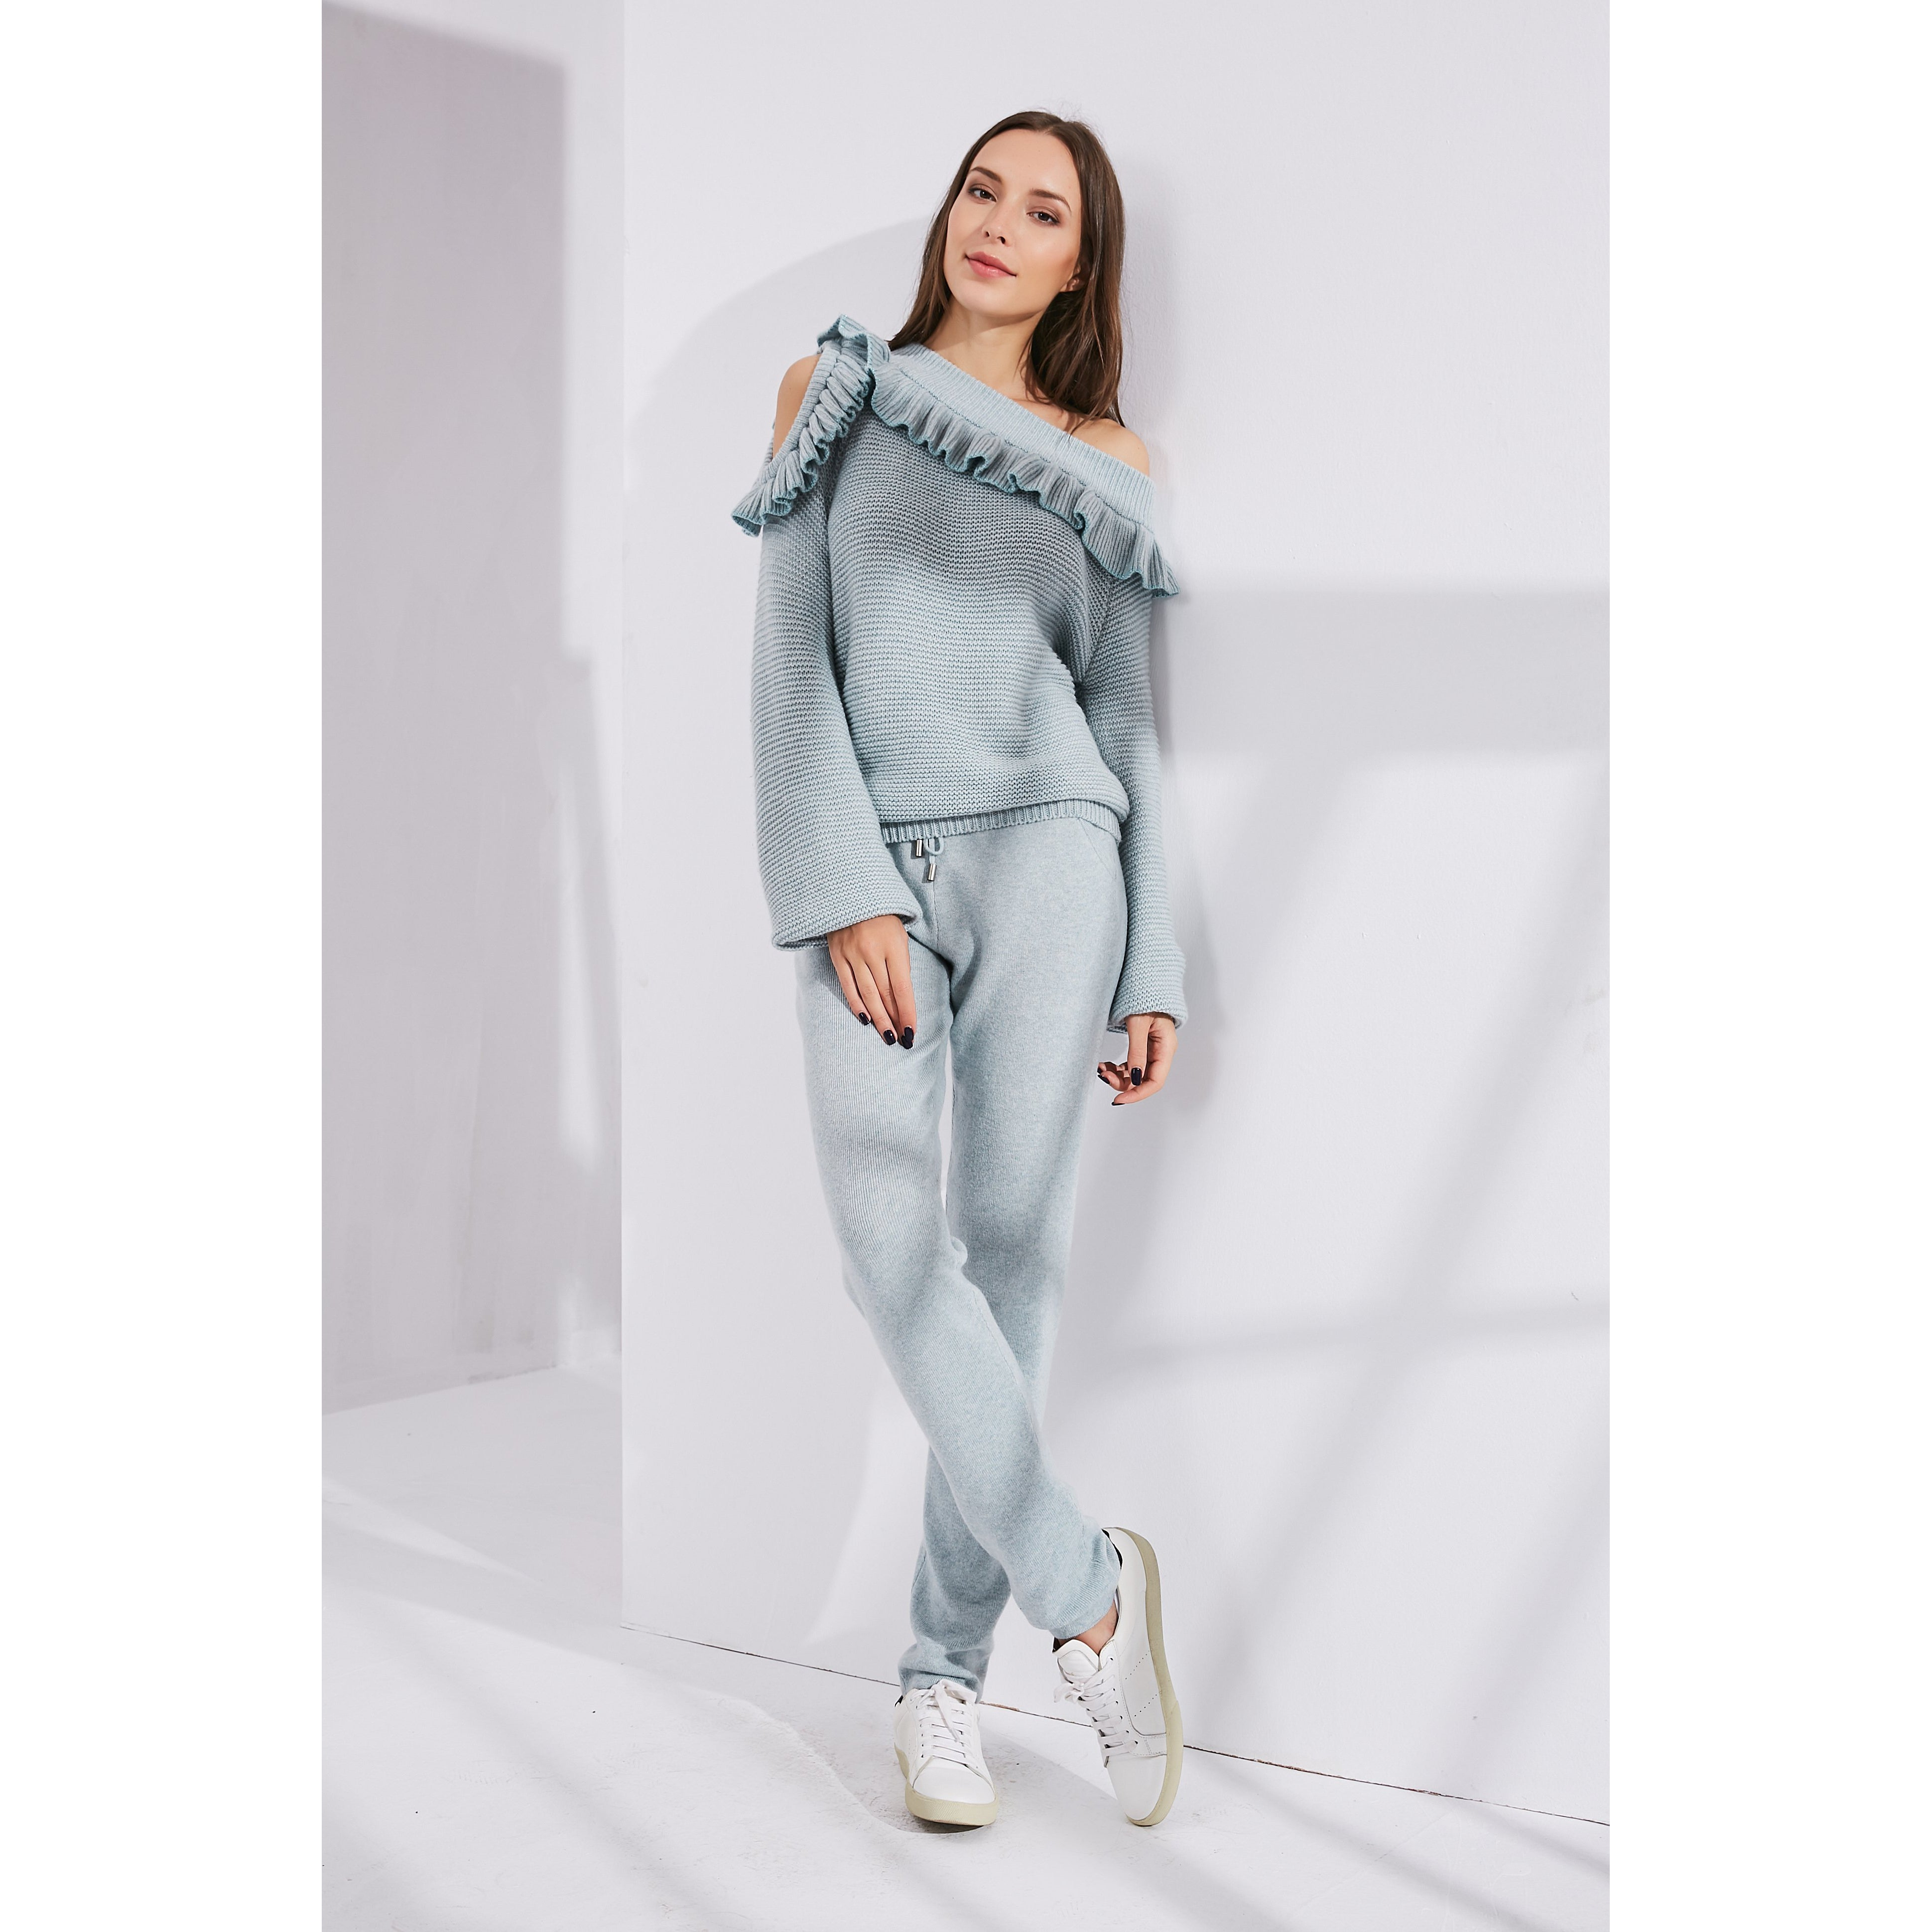 Blue Asymmetric Suit With Frills-INA VOKICH-HOUSE of BOTTA